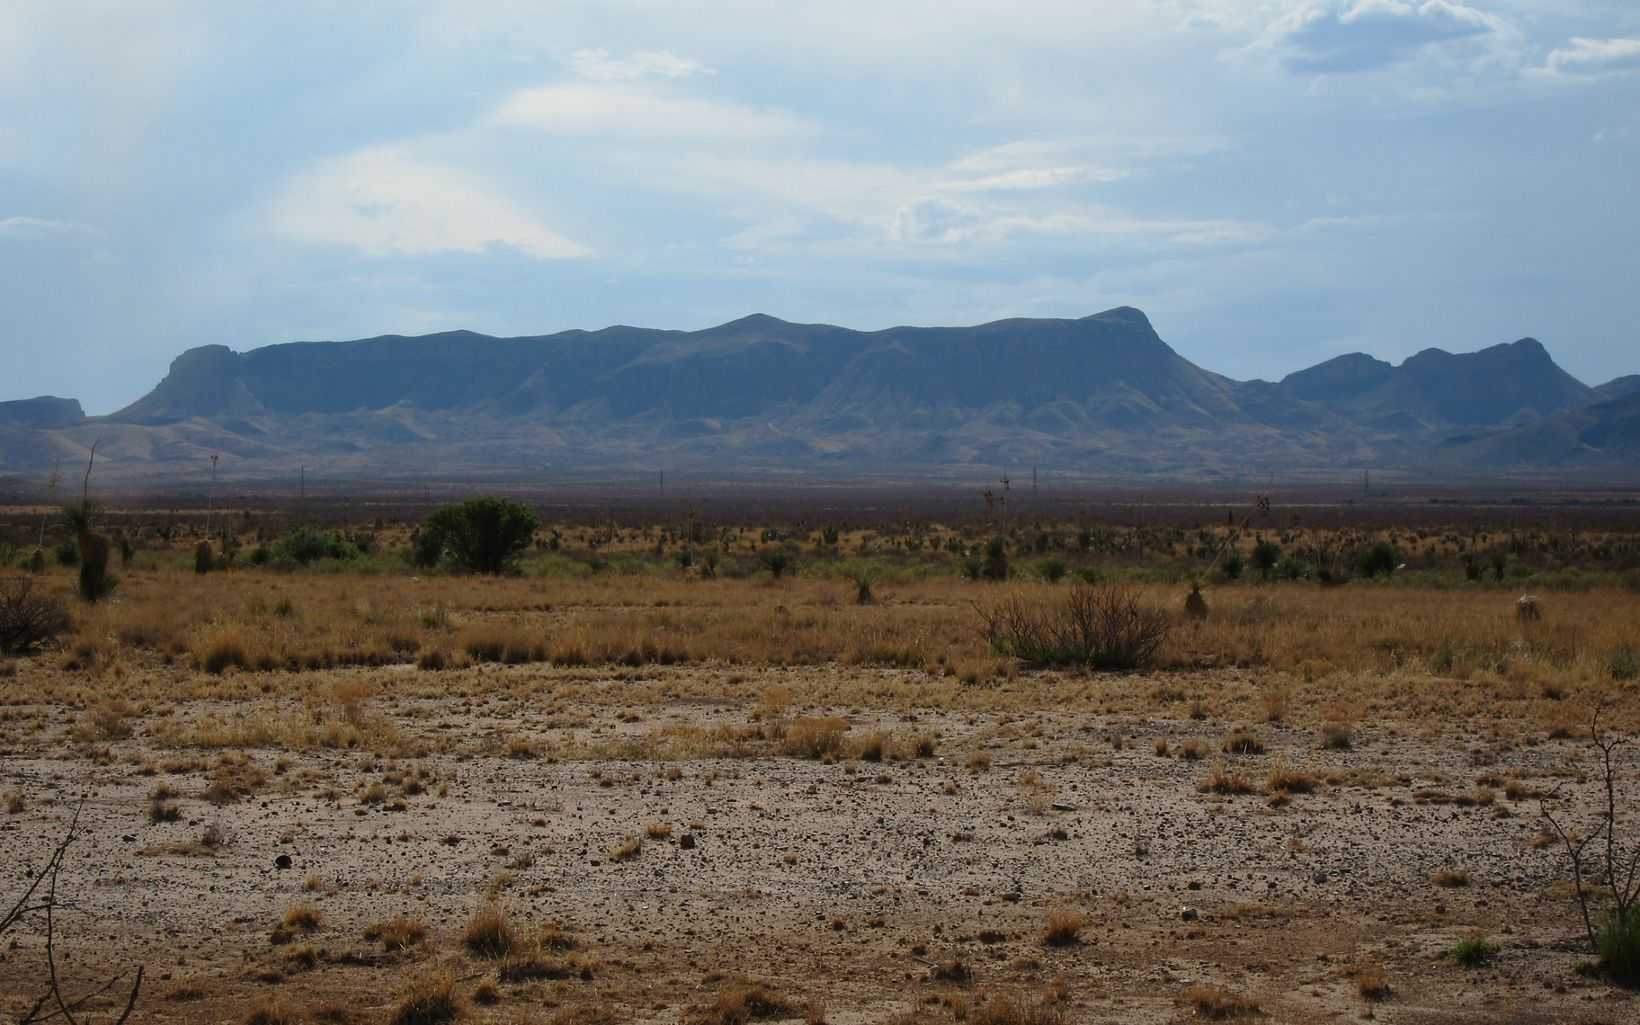 The Jornada Bat Caves are located on the northern end of the 358,000-acre Armendaris Ranch, owned by Ted Turner.